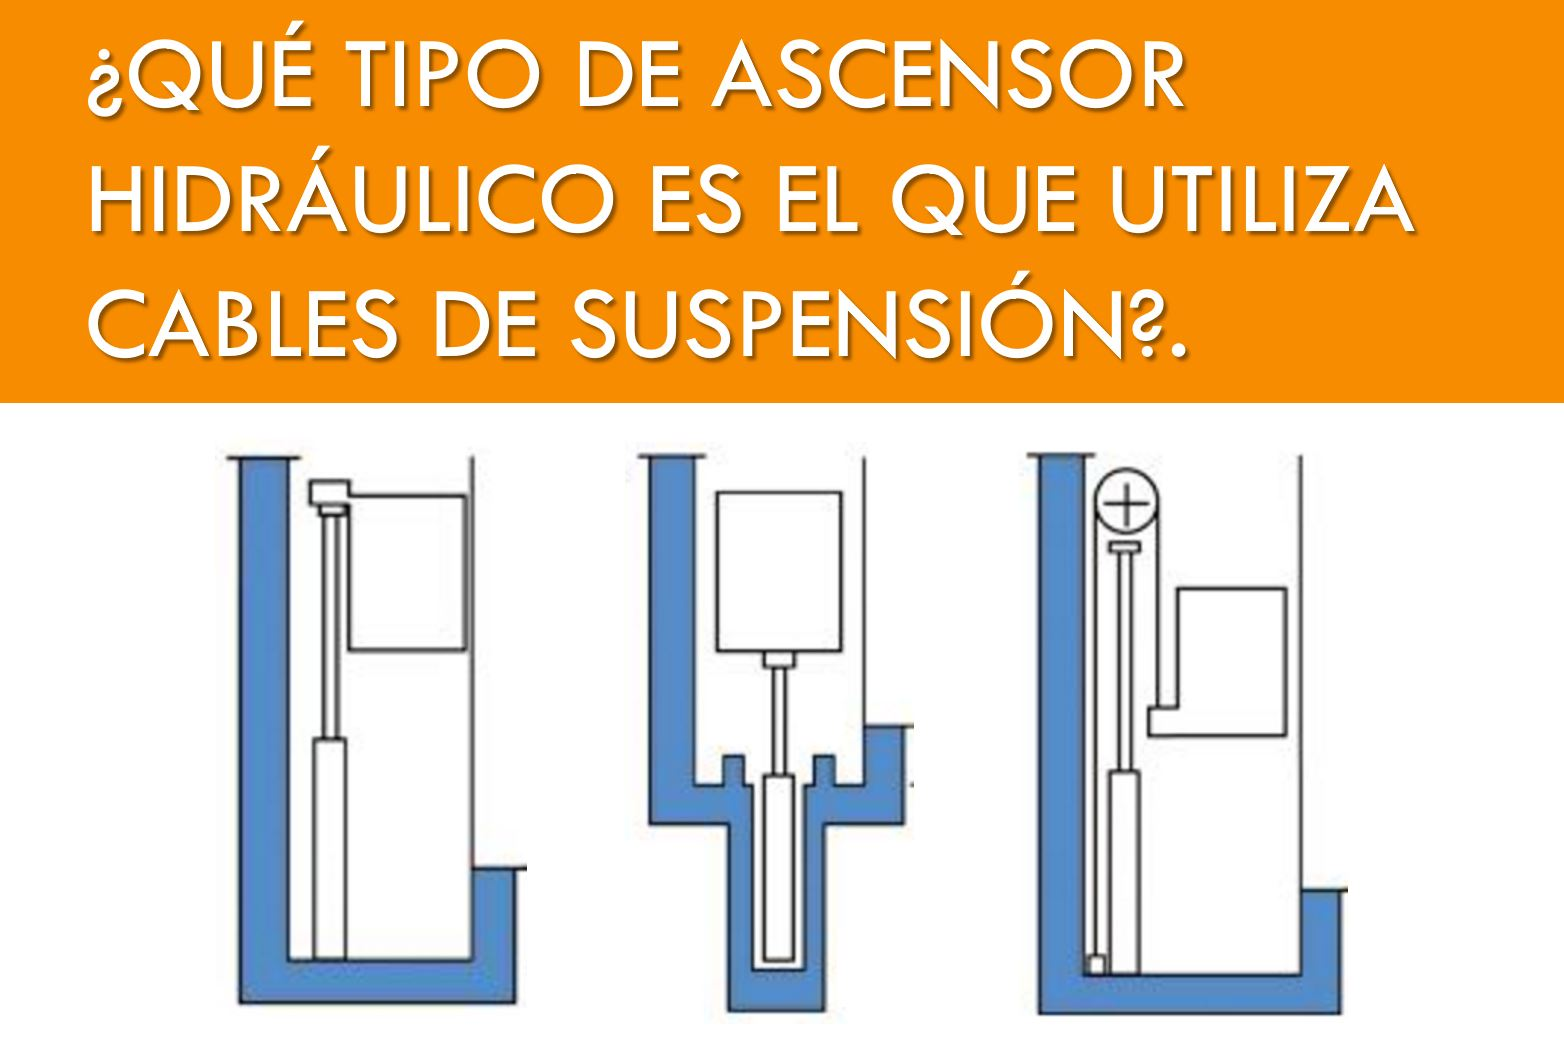 ASCENSOR HIDRAULICO CABLES DE SUSPENSION